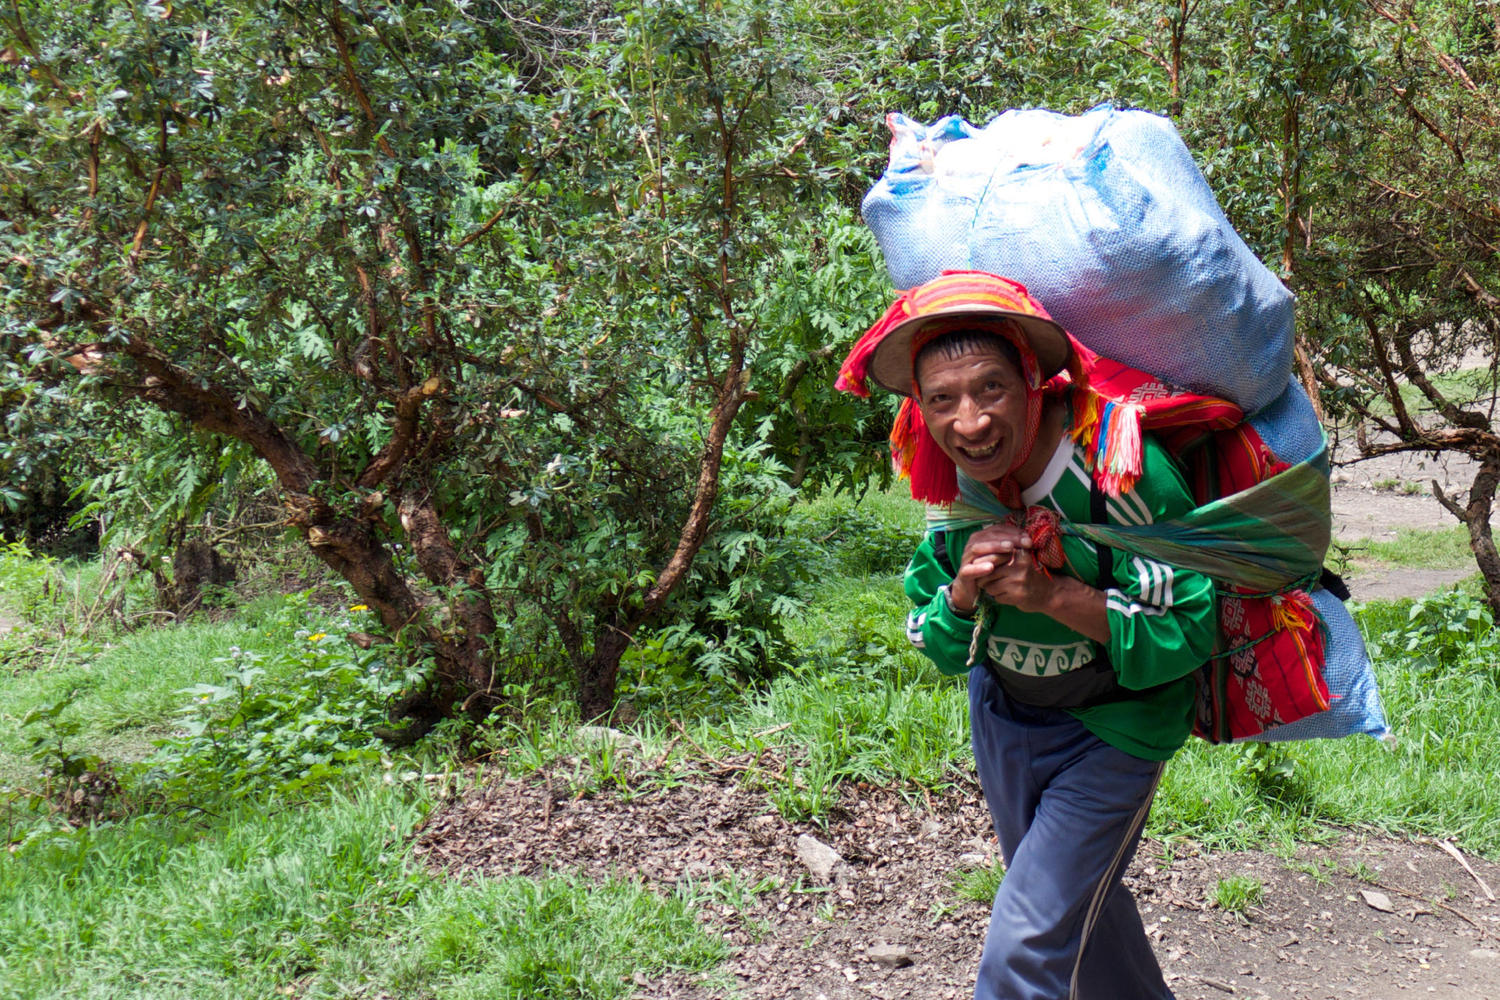 Local porters follow in the footsteps of Inca messengers